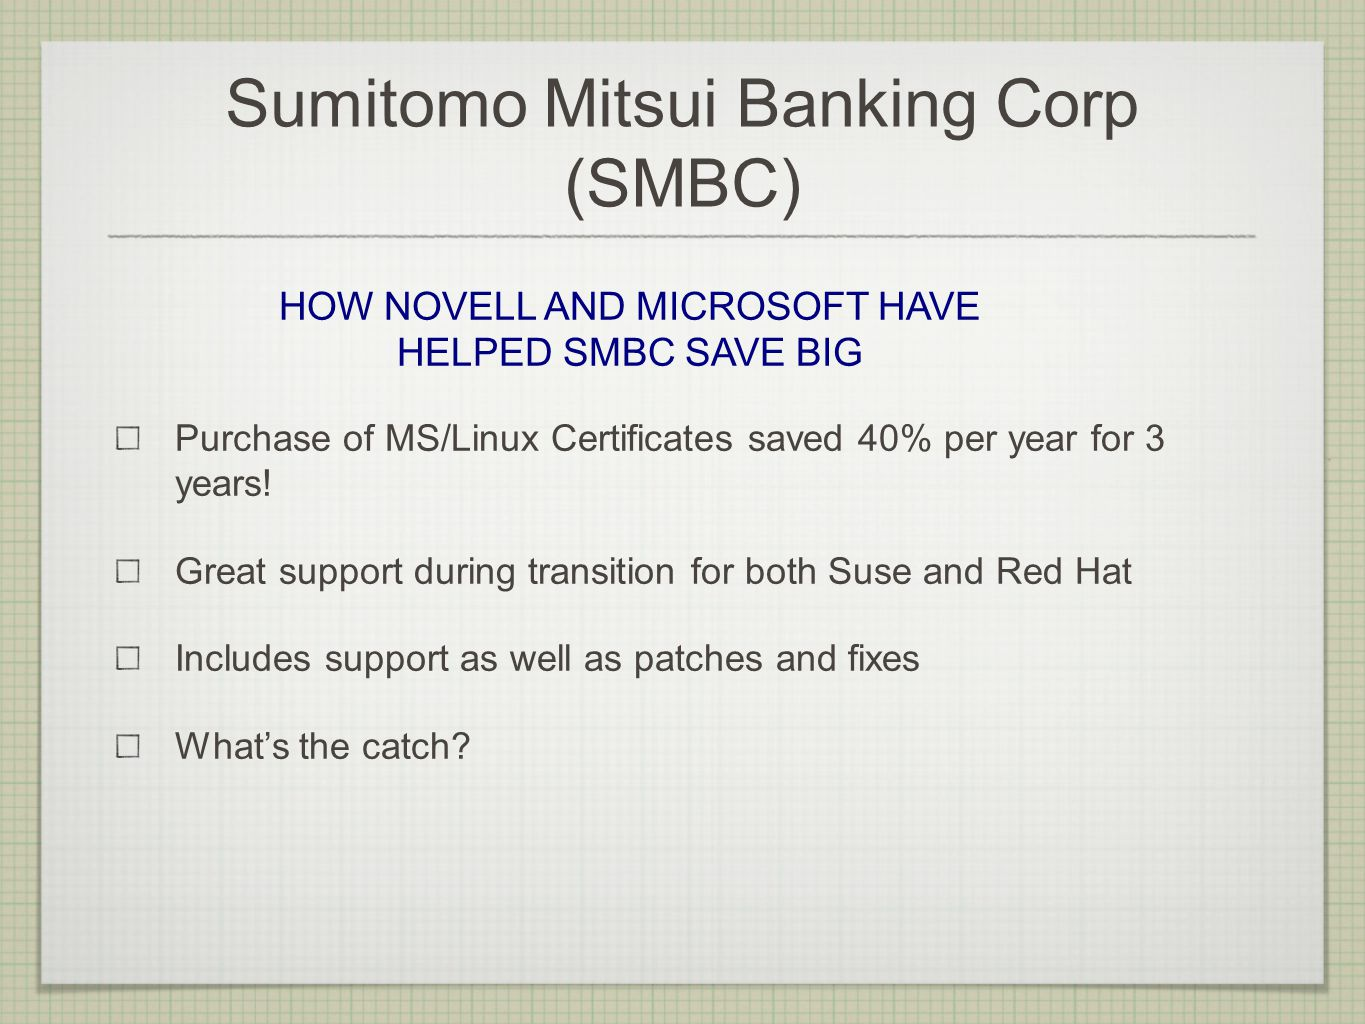 Sumitomo Mitsui Banking Corp (SMBC) Purchase of MS/Linux Certificates saved 40% per year for 3 years! Great support during transition for both Suse an